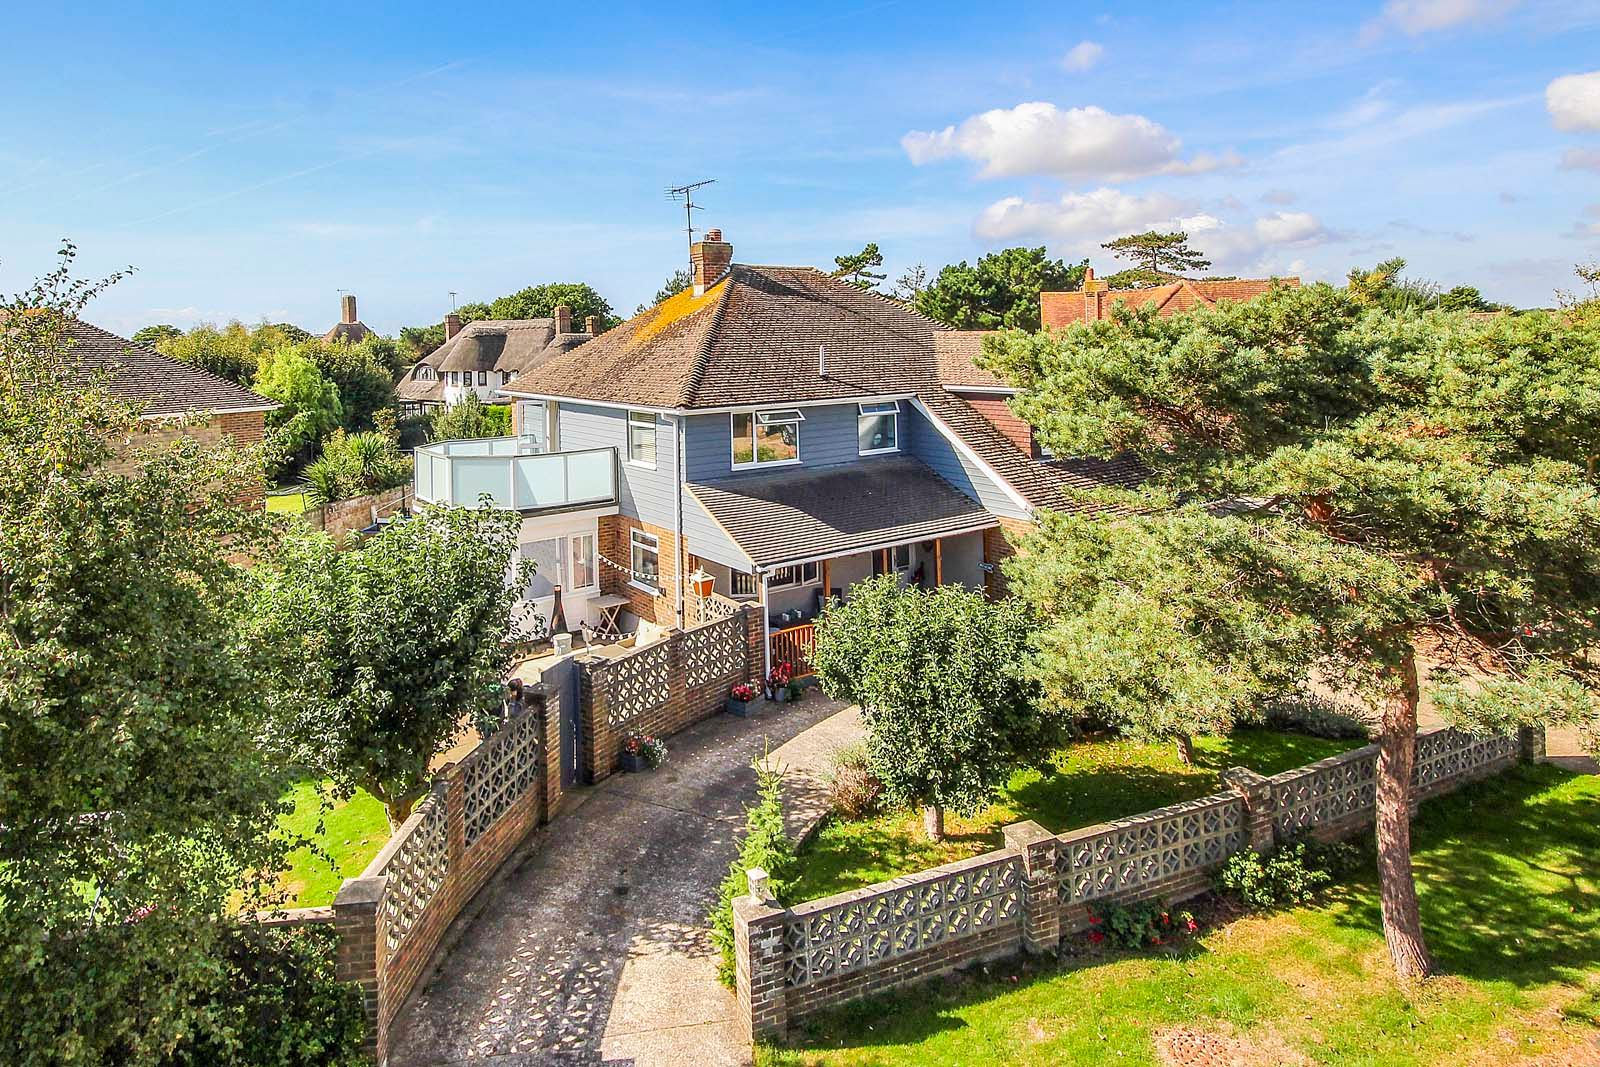 4 bed House for sale in Rustington - Elevated front (Property Image 15)